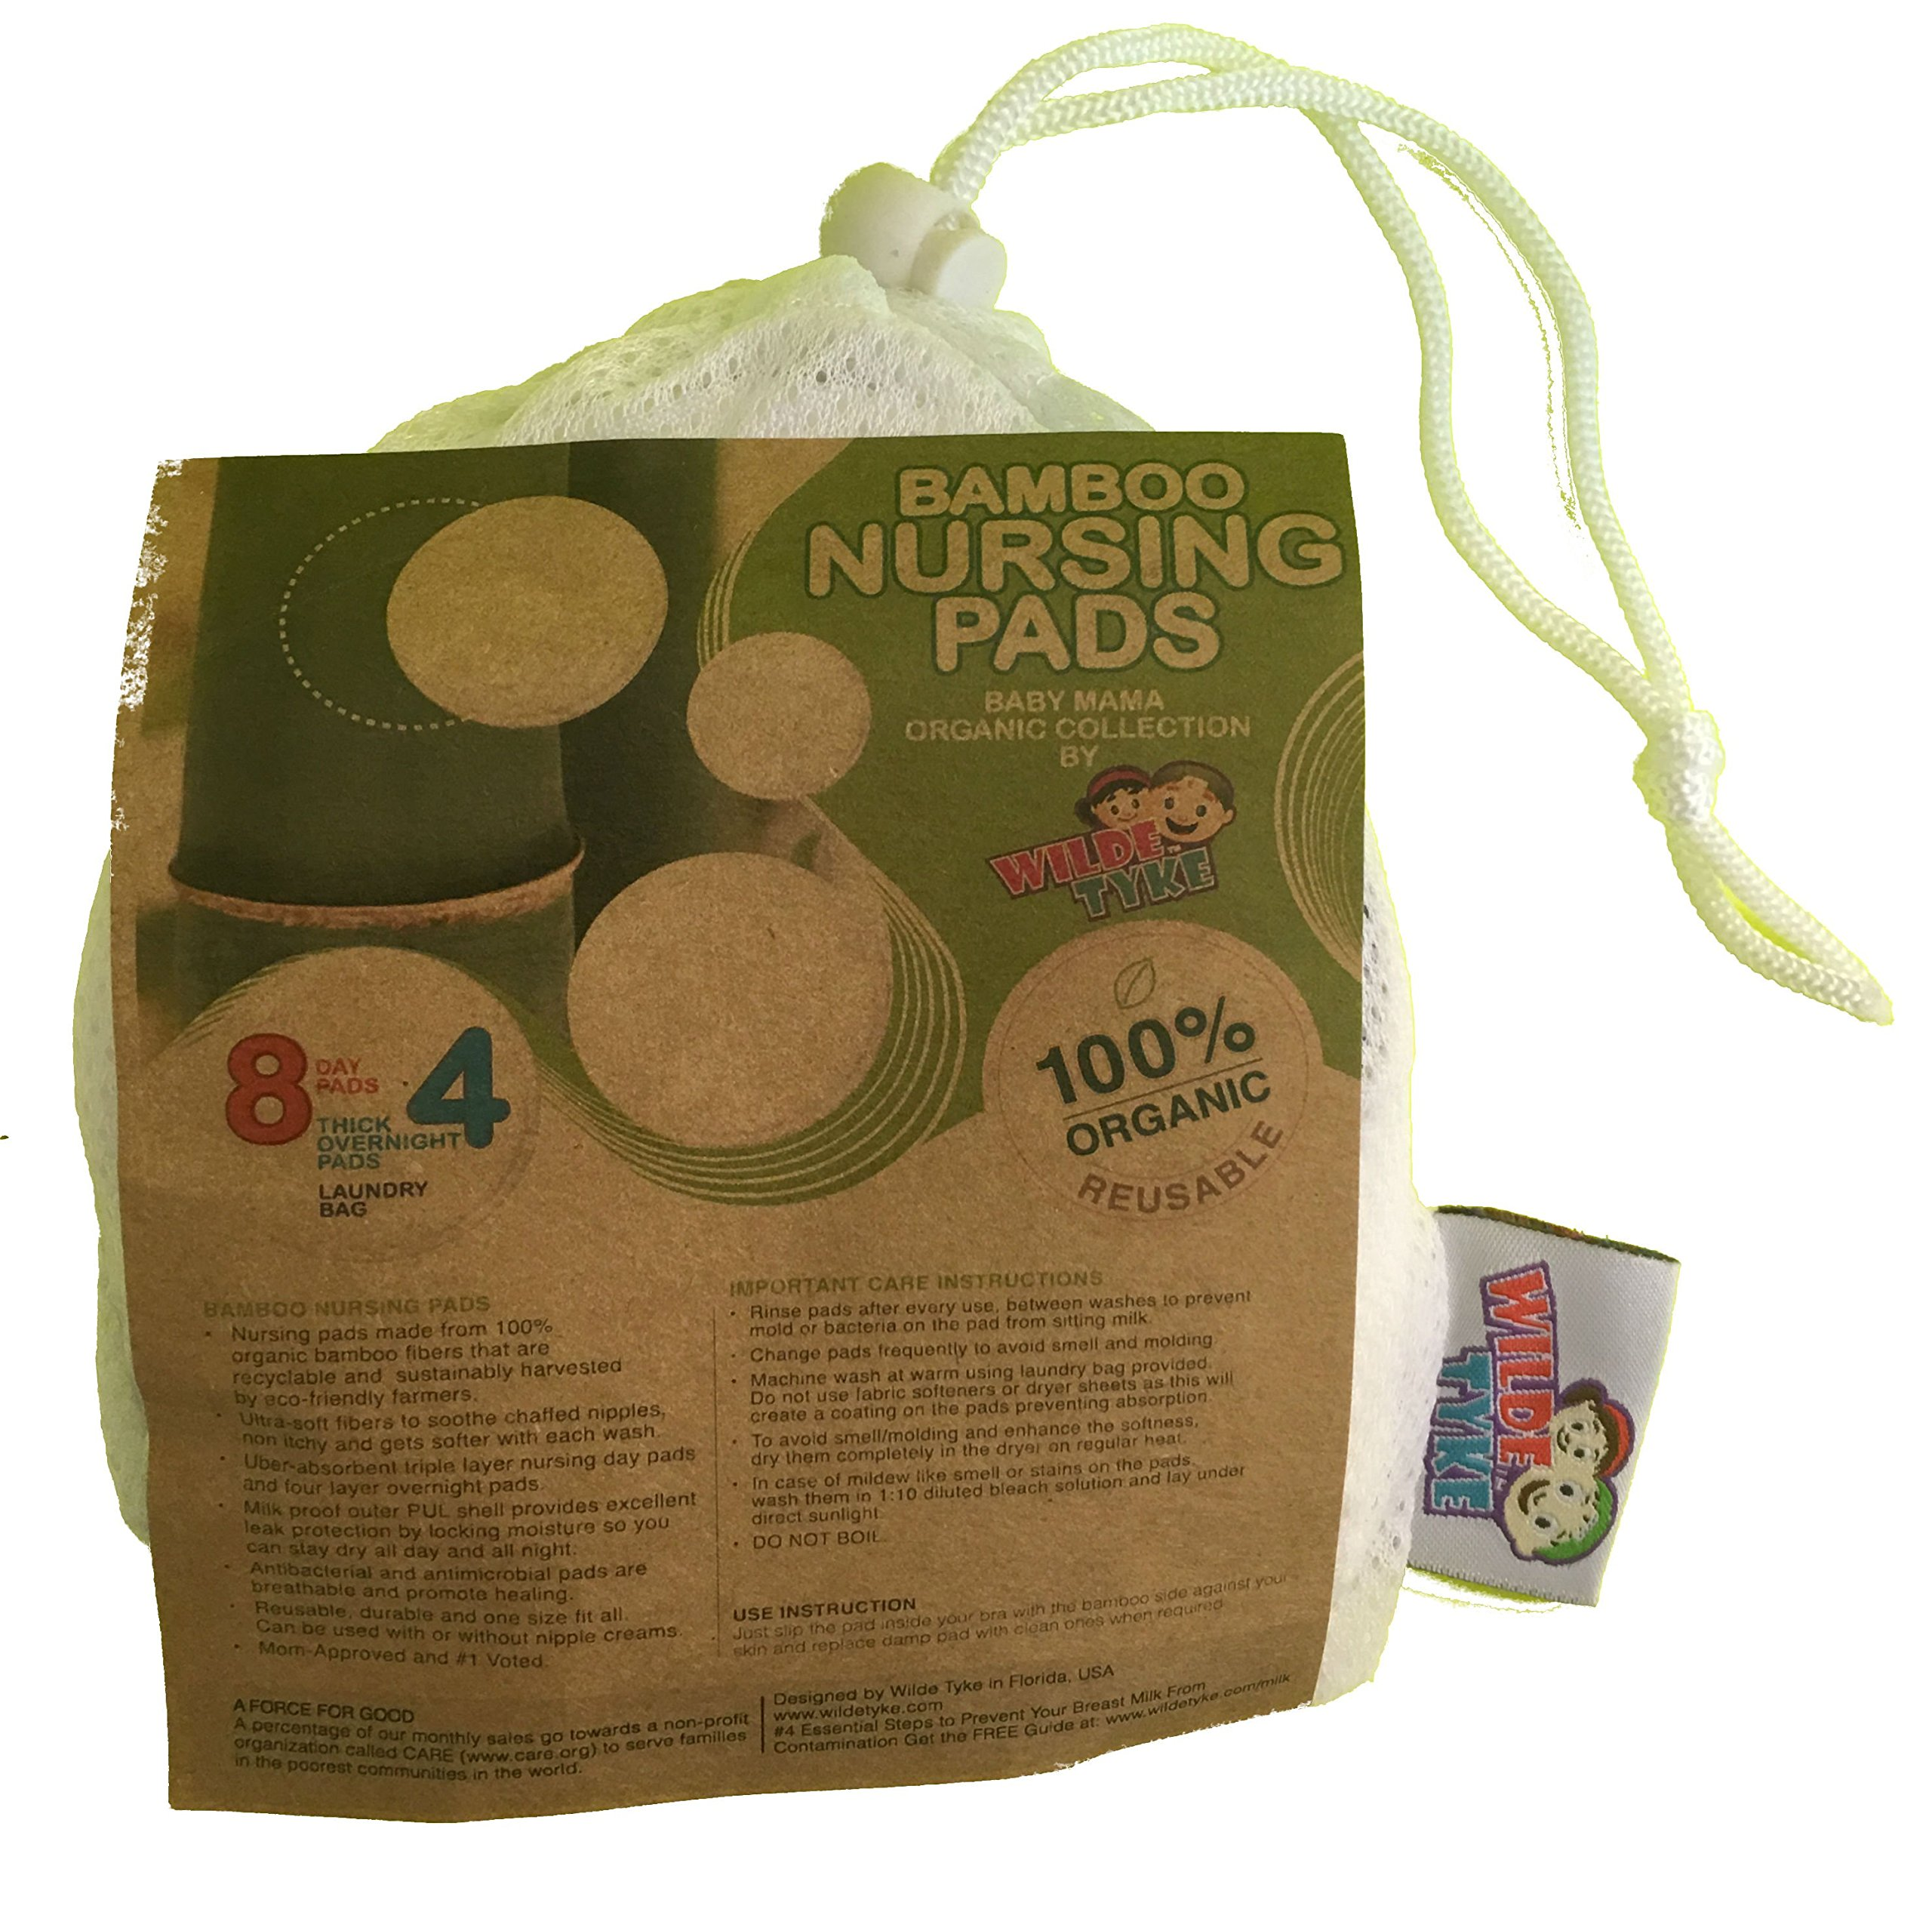 100% Organic Bamboo Nursing Pads by Wilde Tyke (8 Day Pads + 4 Thick Overnight) with Laundry Bag. Washable Ultra-Soft Antibacterial Breastfeeding Pads with Waterproof Layer. Mom-Approved, 1 Voted!